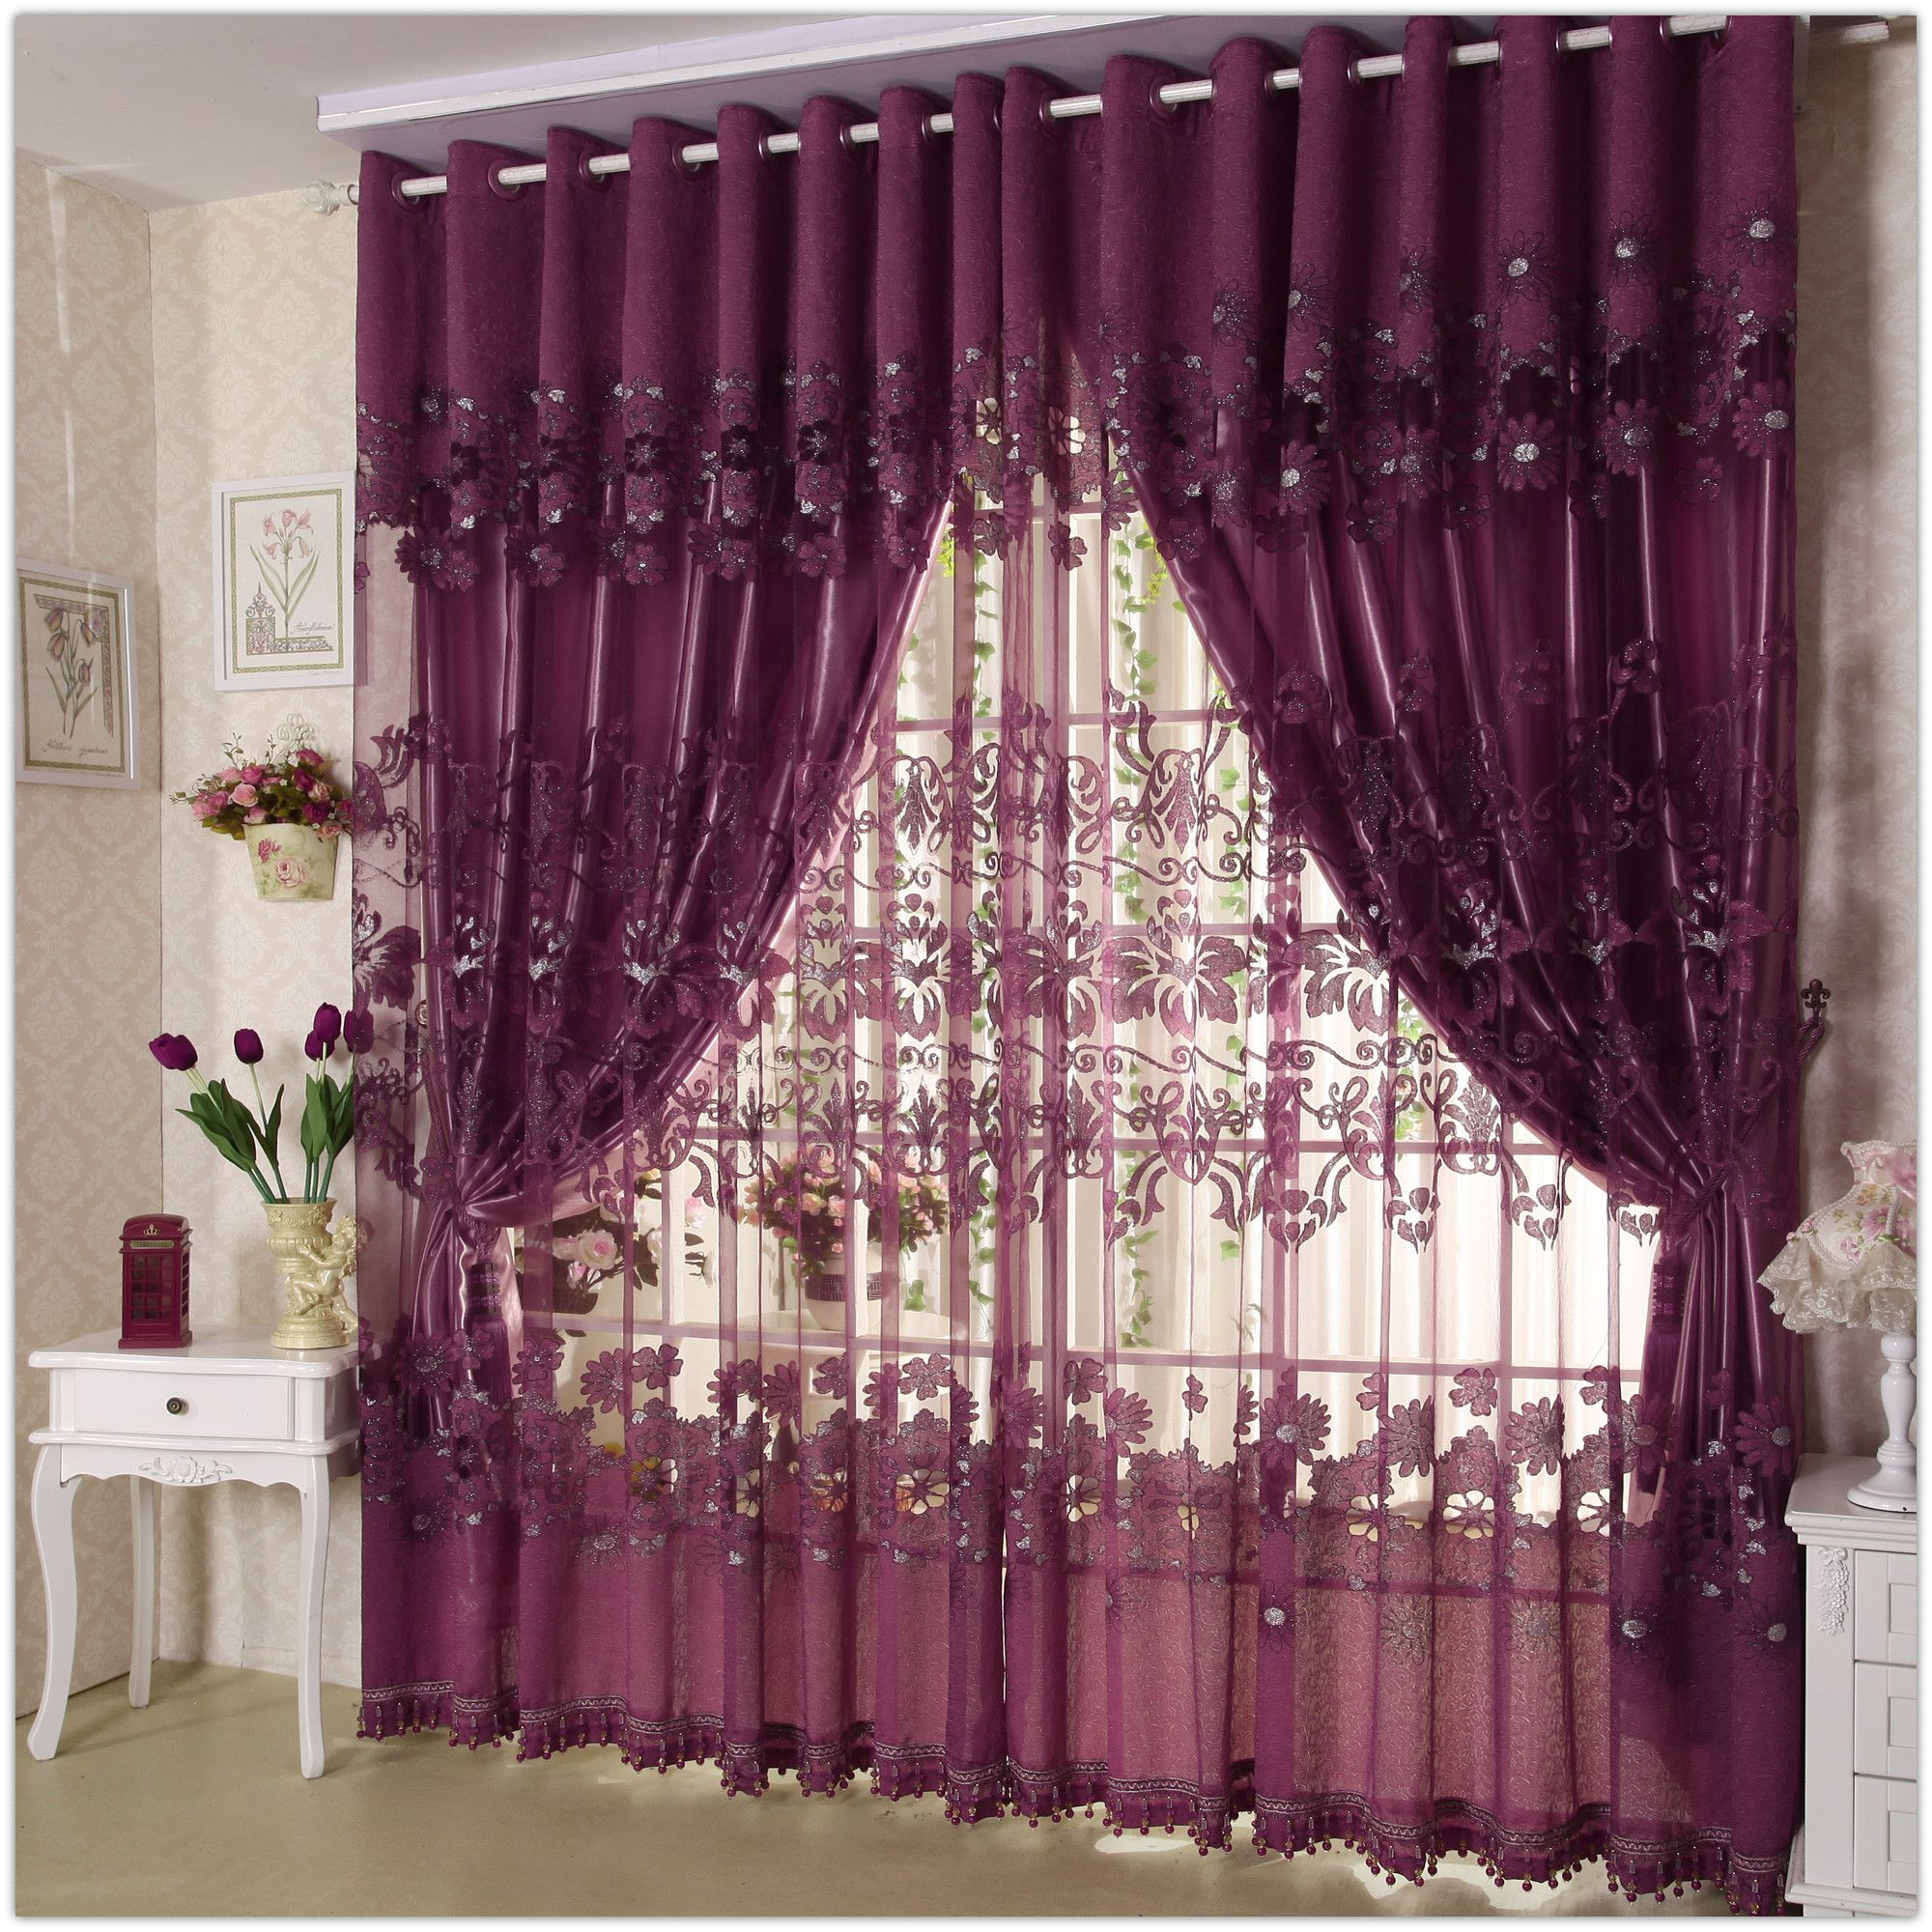 Black out curtains elegant valance curtains beaded valance curtains - Quality Flower Purple Curtain Fashion Modern Brief Sheer Curtain With Blackout Lining Curtains Free Shipping 96 11